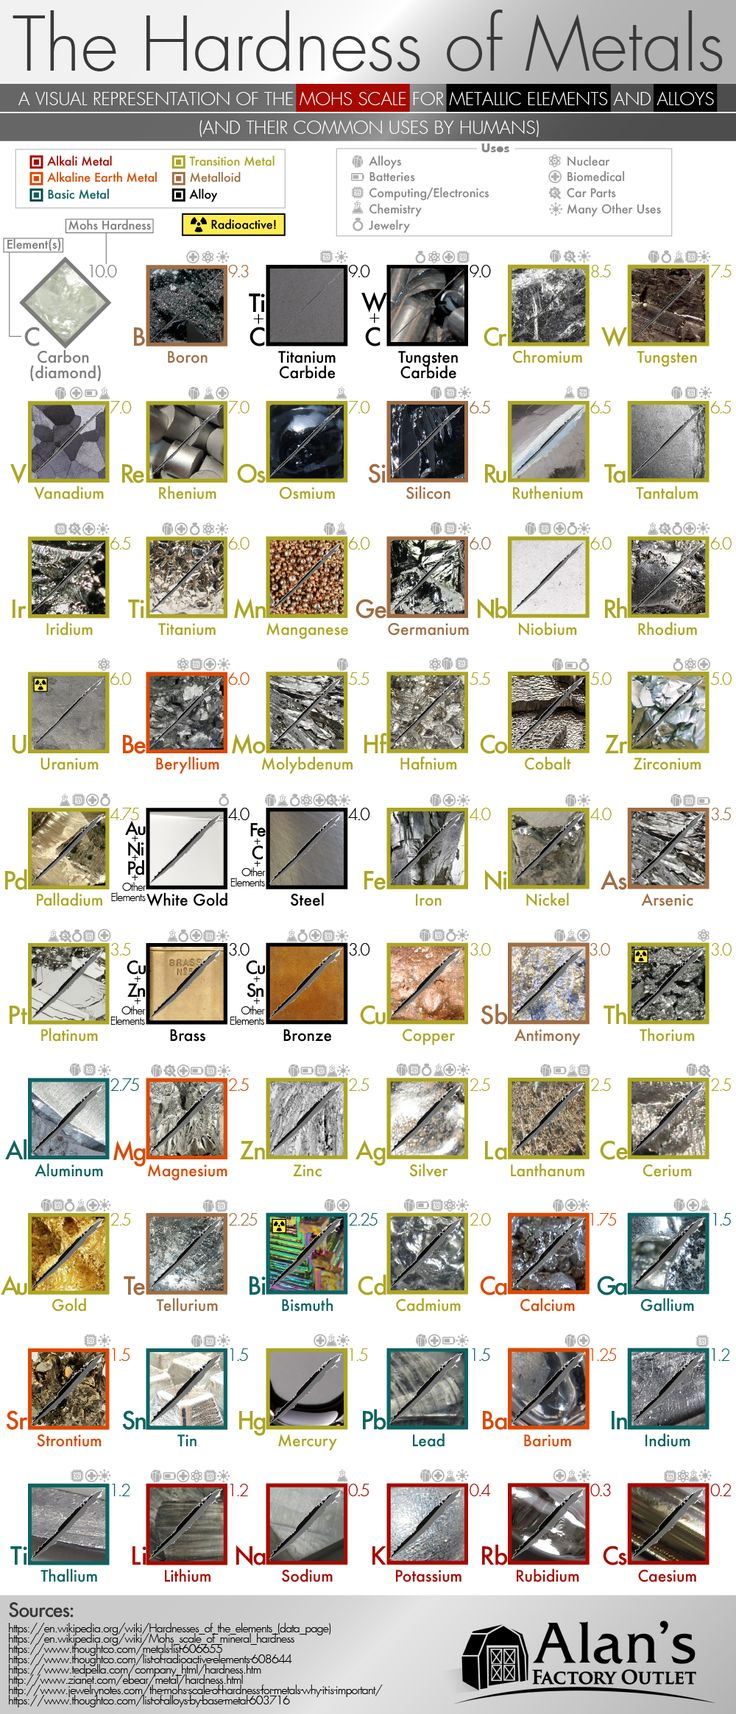 The Hardness of Metals: A Visual Representation of Mohs Scale [Infographic]